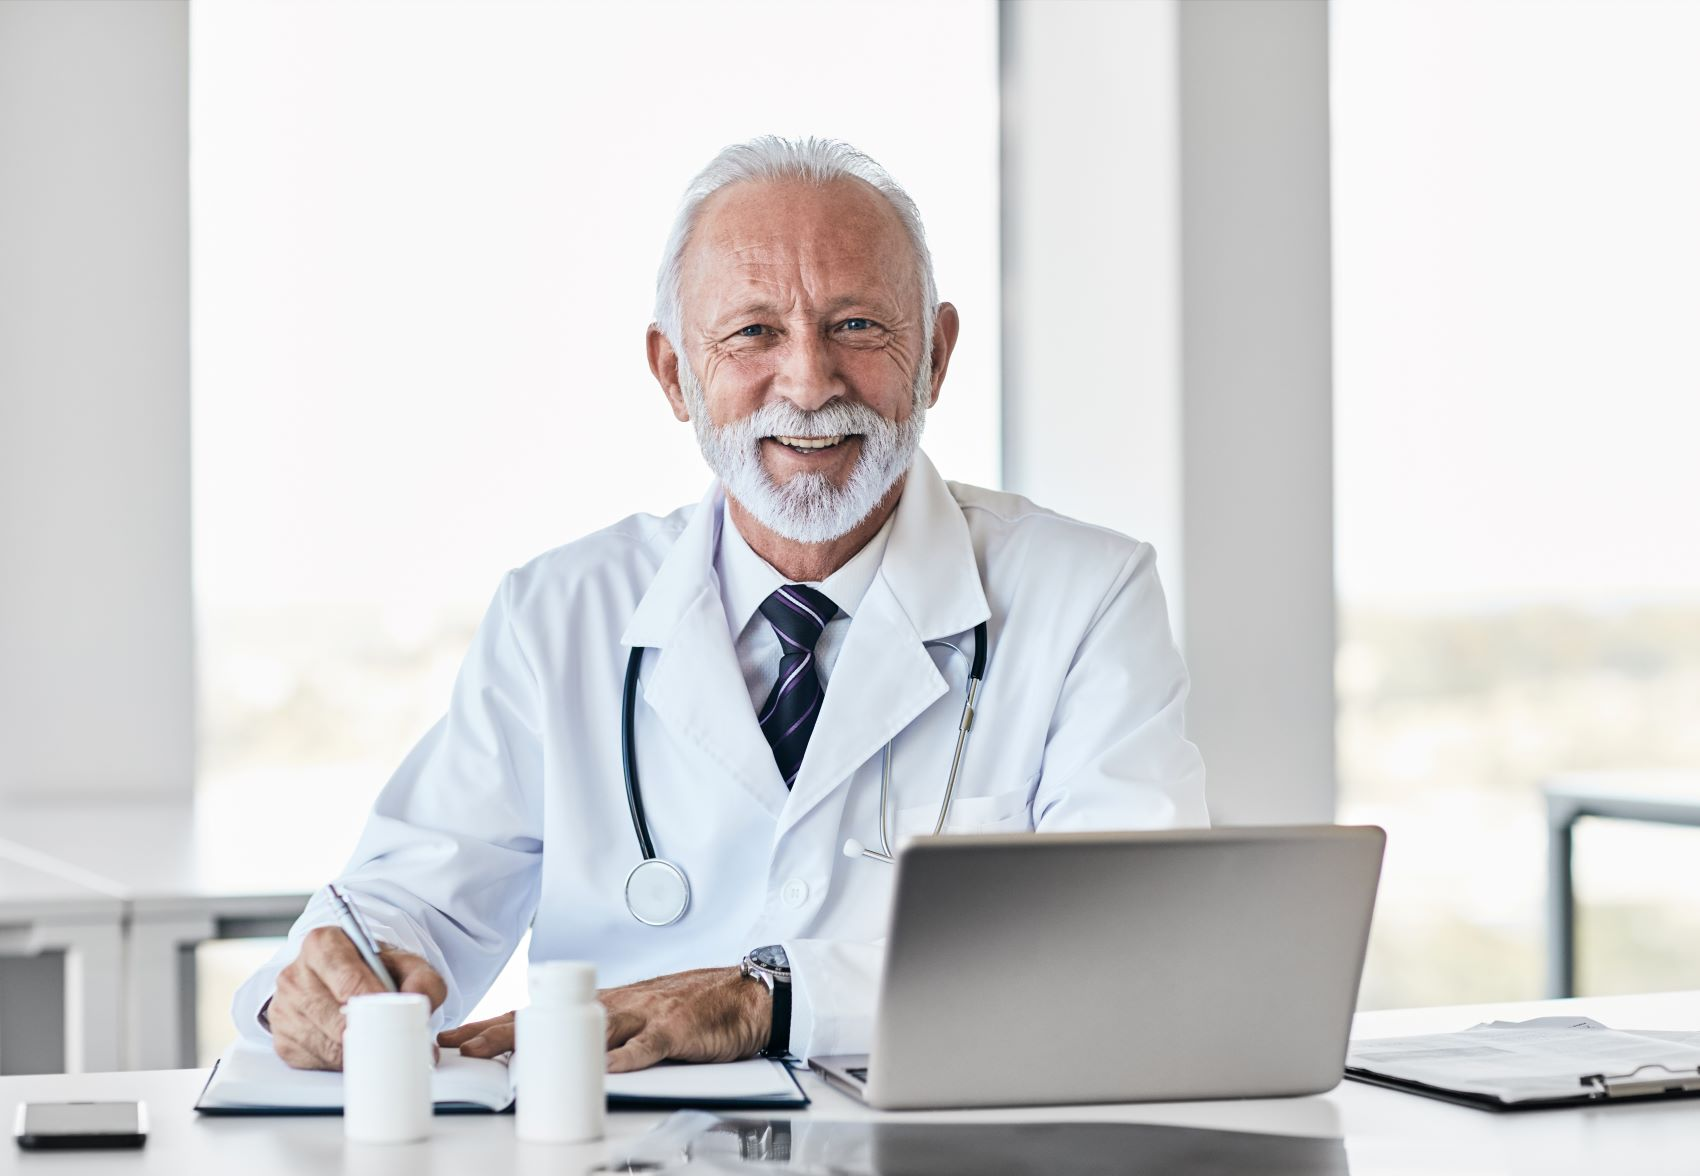 Older doctor using digital technology to collect patient reported outcomes